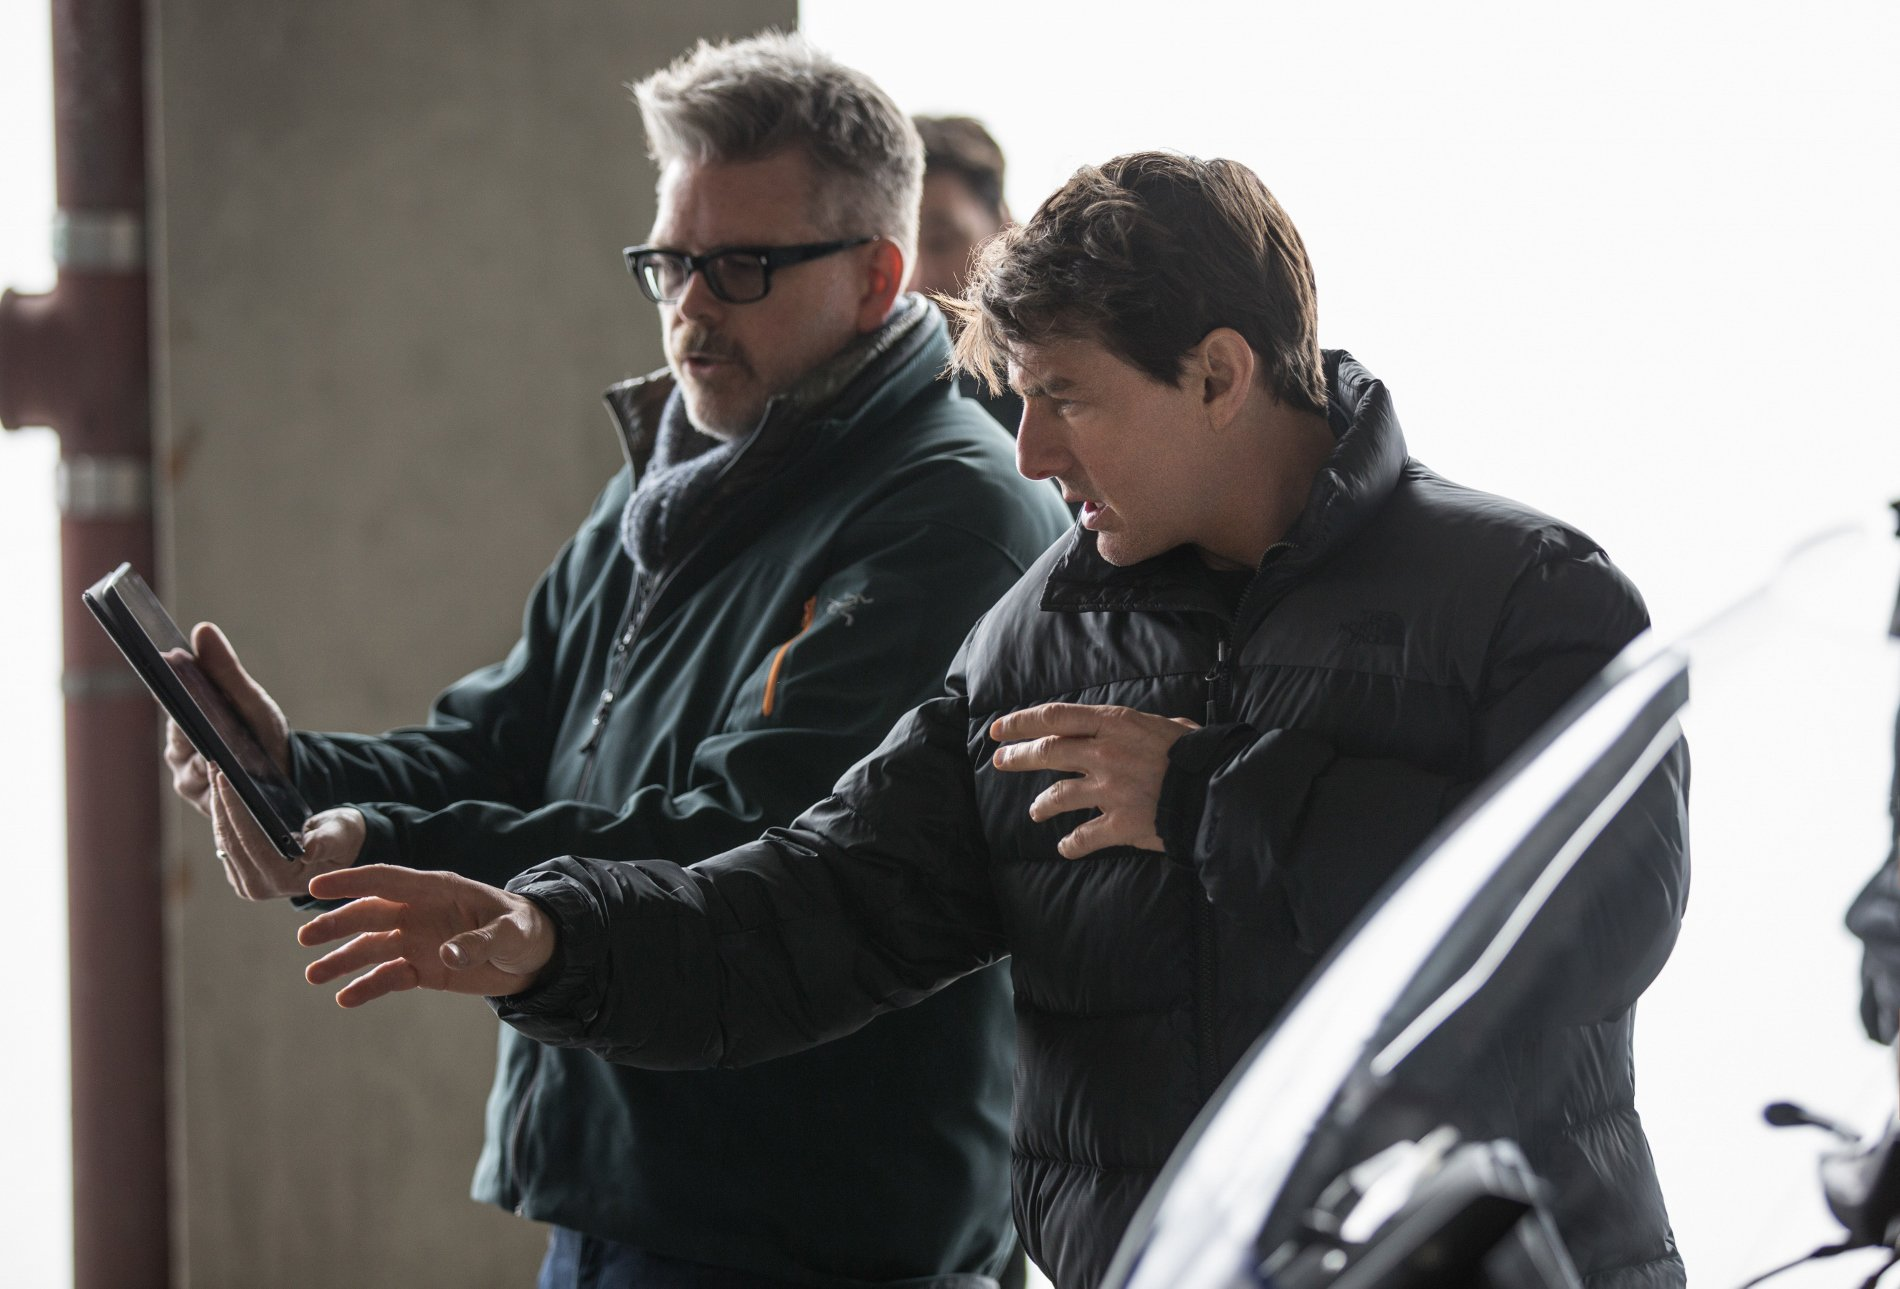 Mission Impossible Christopher McQuarrie Mission: Impossible